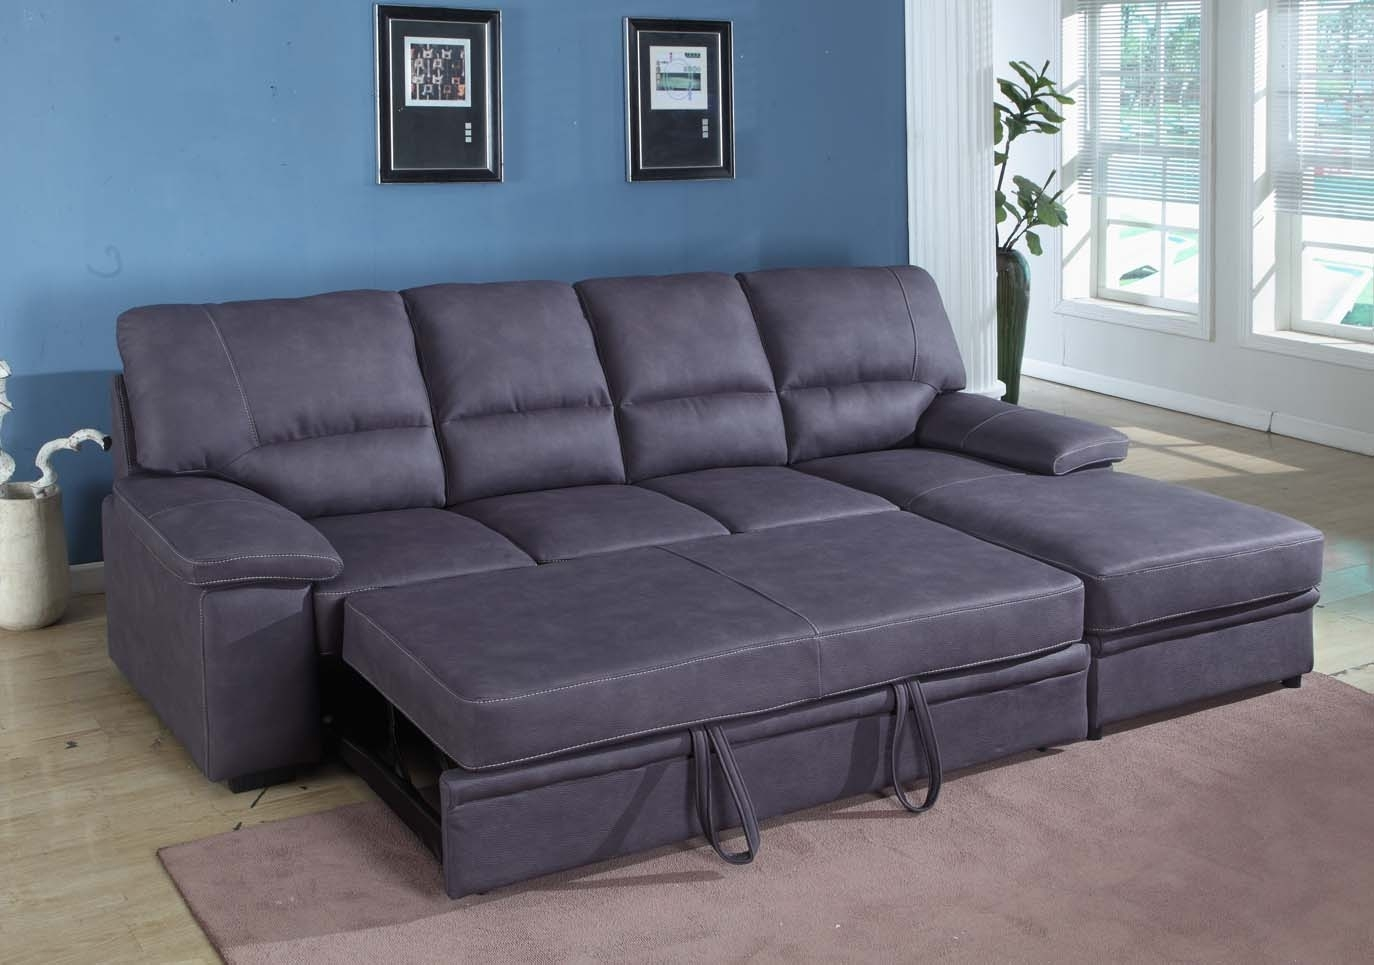 Grey Sleeper Sectional Sofa | Houston Mattress King Regarding Sectional Sofas With Sleeper (View 9 of 10)